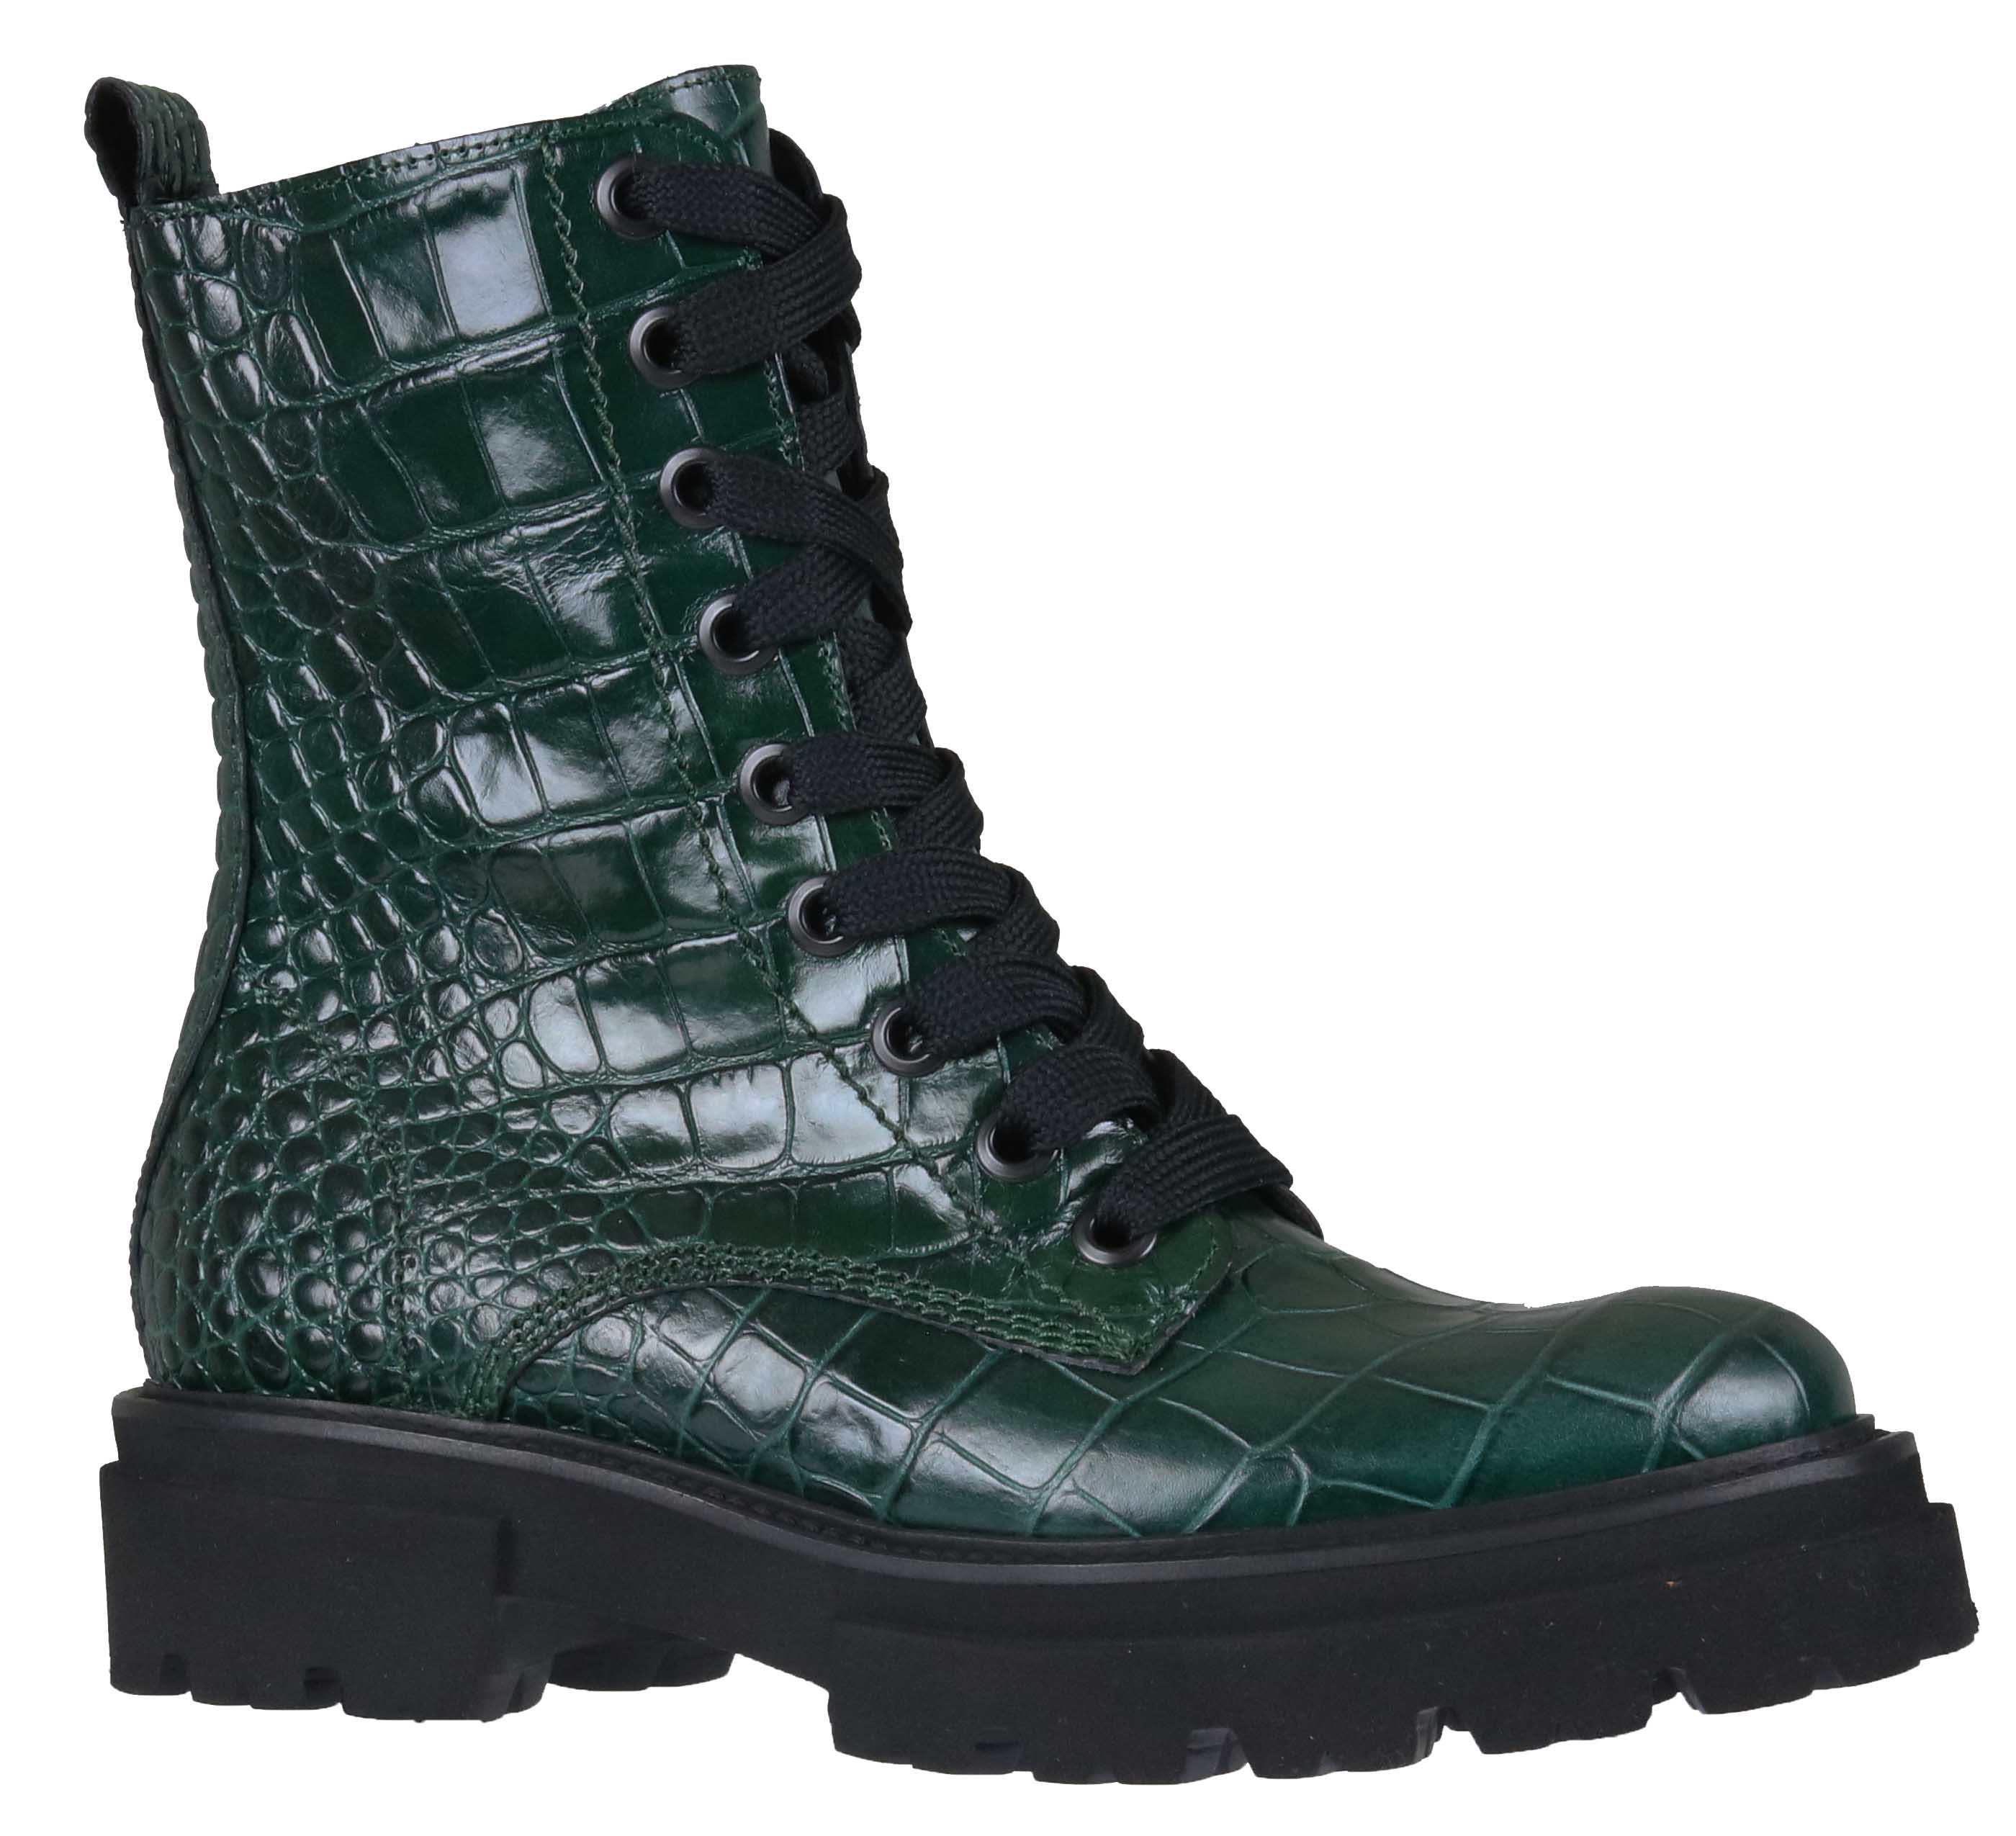 Kennel & Schmenger ankle boots 2130550 434 Green by